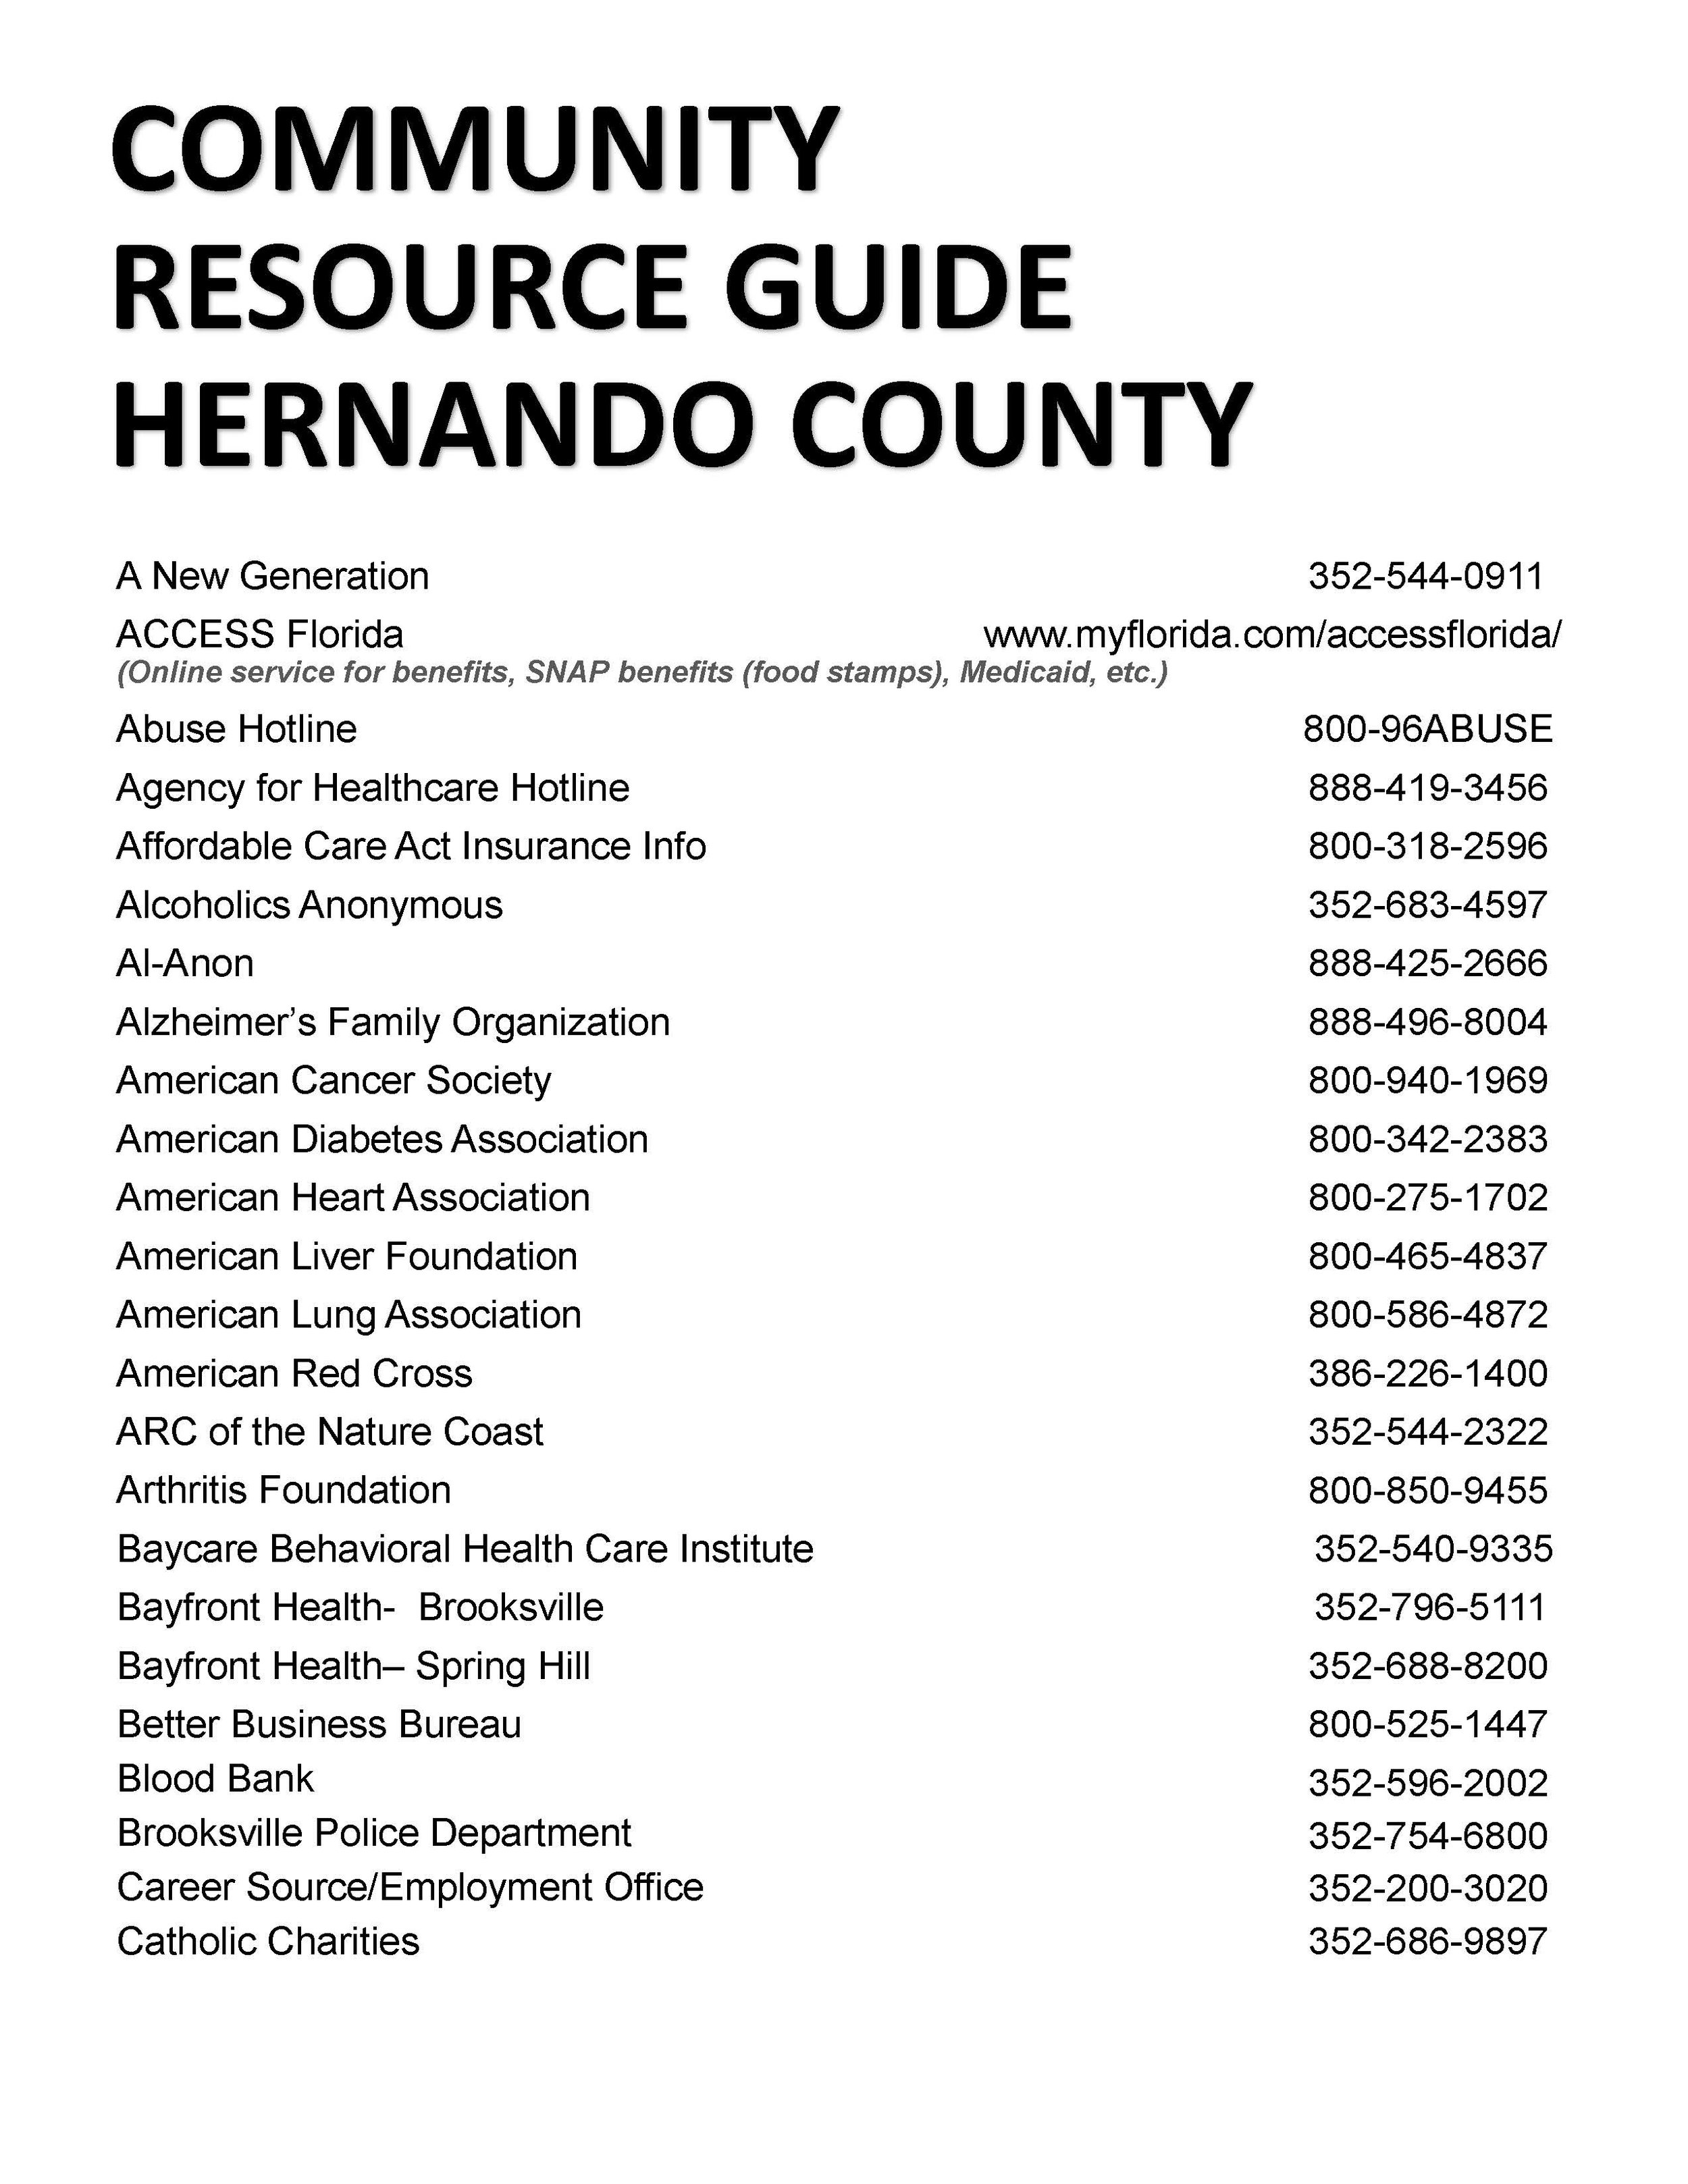 Hernando County Resource List_Page_1.jpg